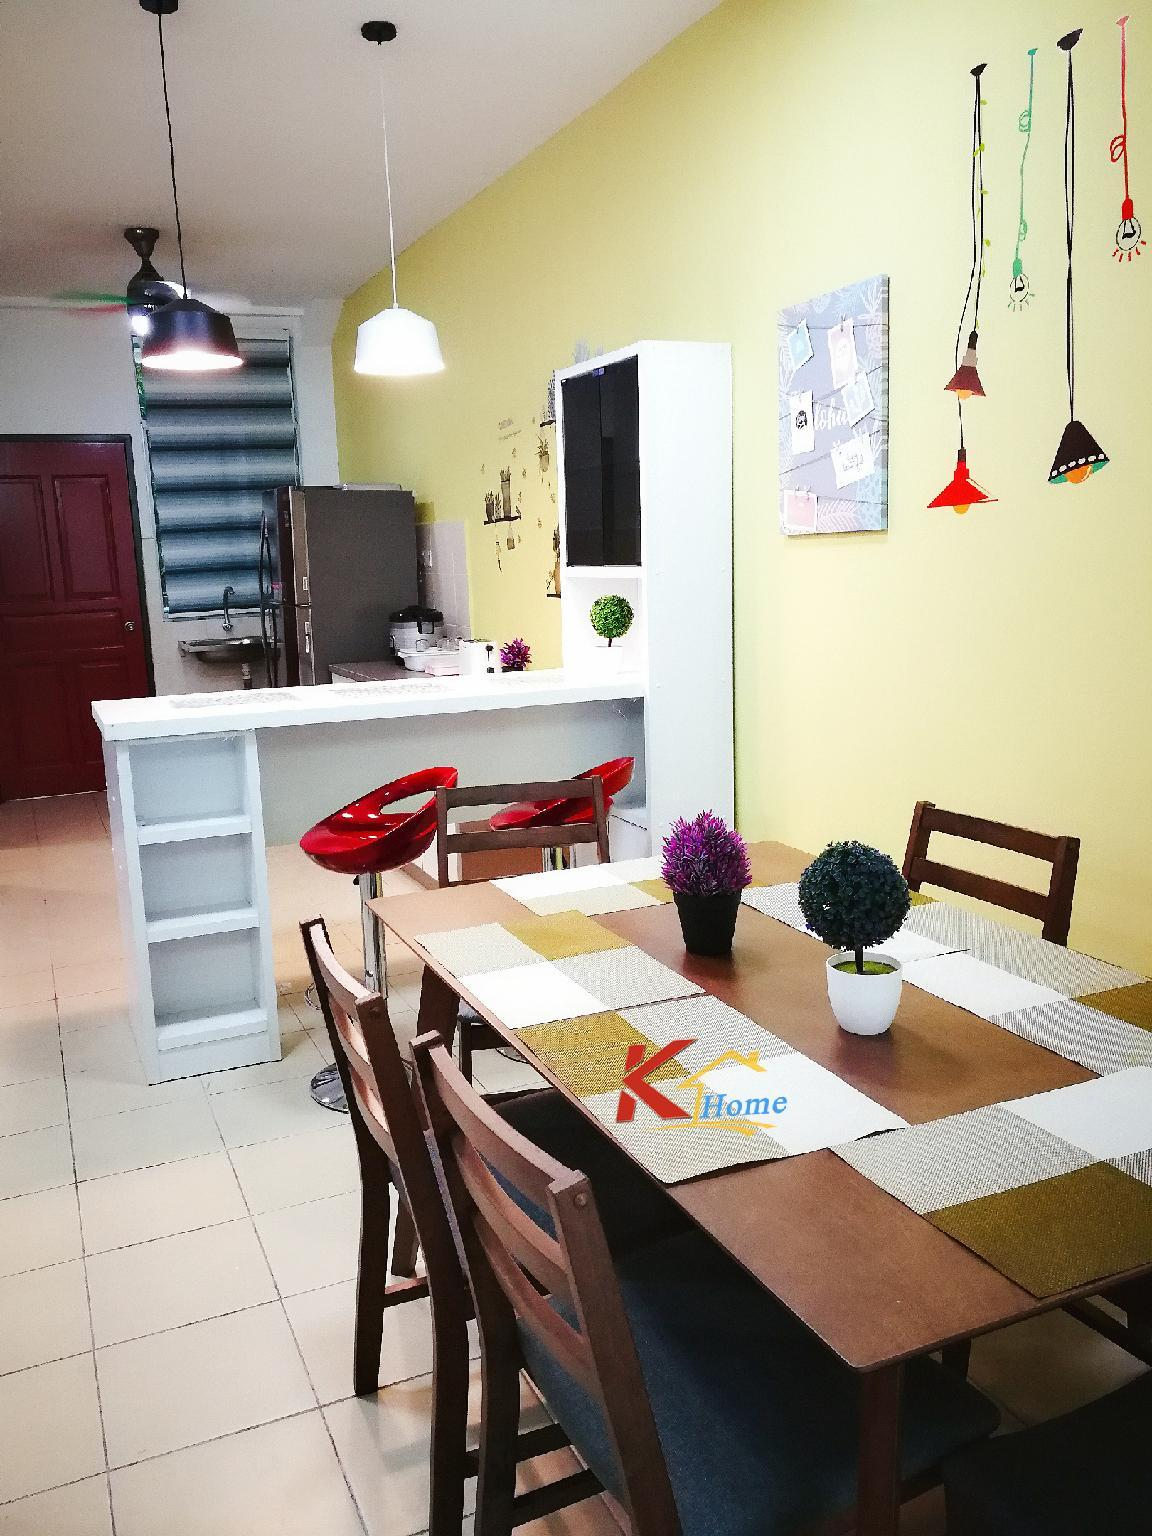 CityCentre 3Storey House 5B4R@ 5min To IMAGO MALL